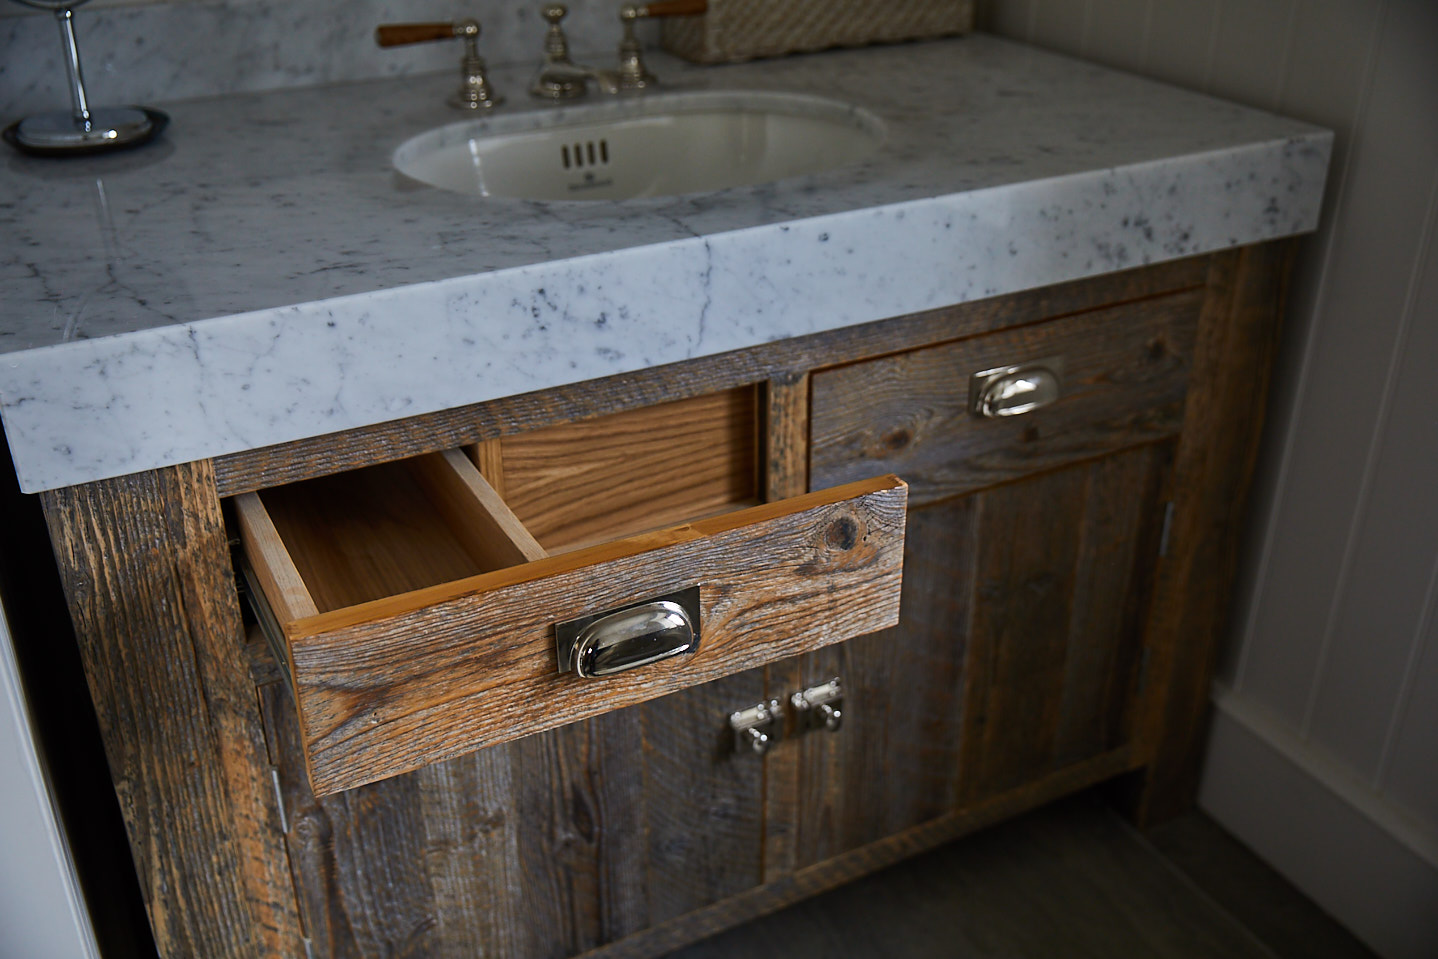 Rustic vanity drawer is shaped around pipes